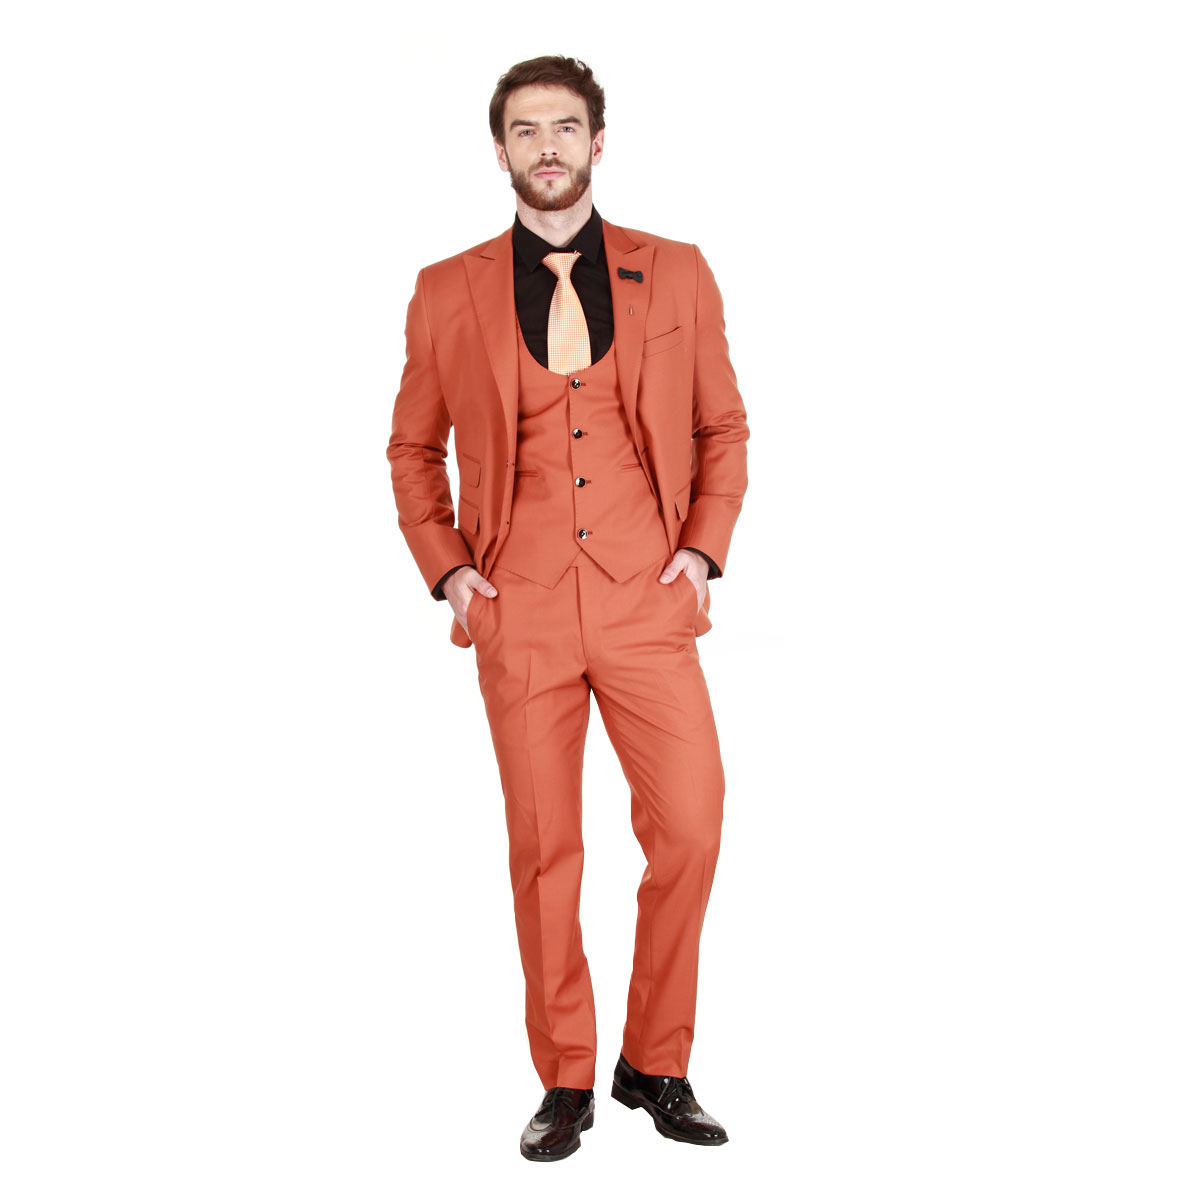 Men suits men s wedding wear stores online for Online custom tailored shirts